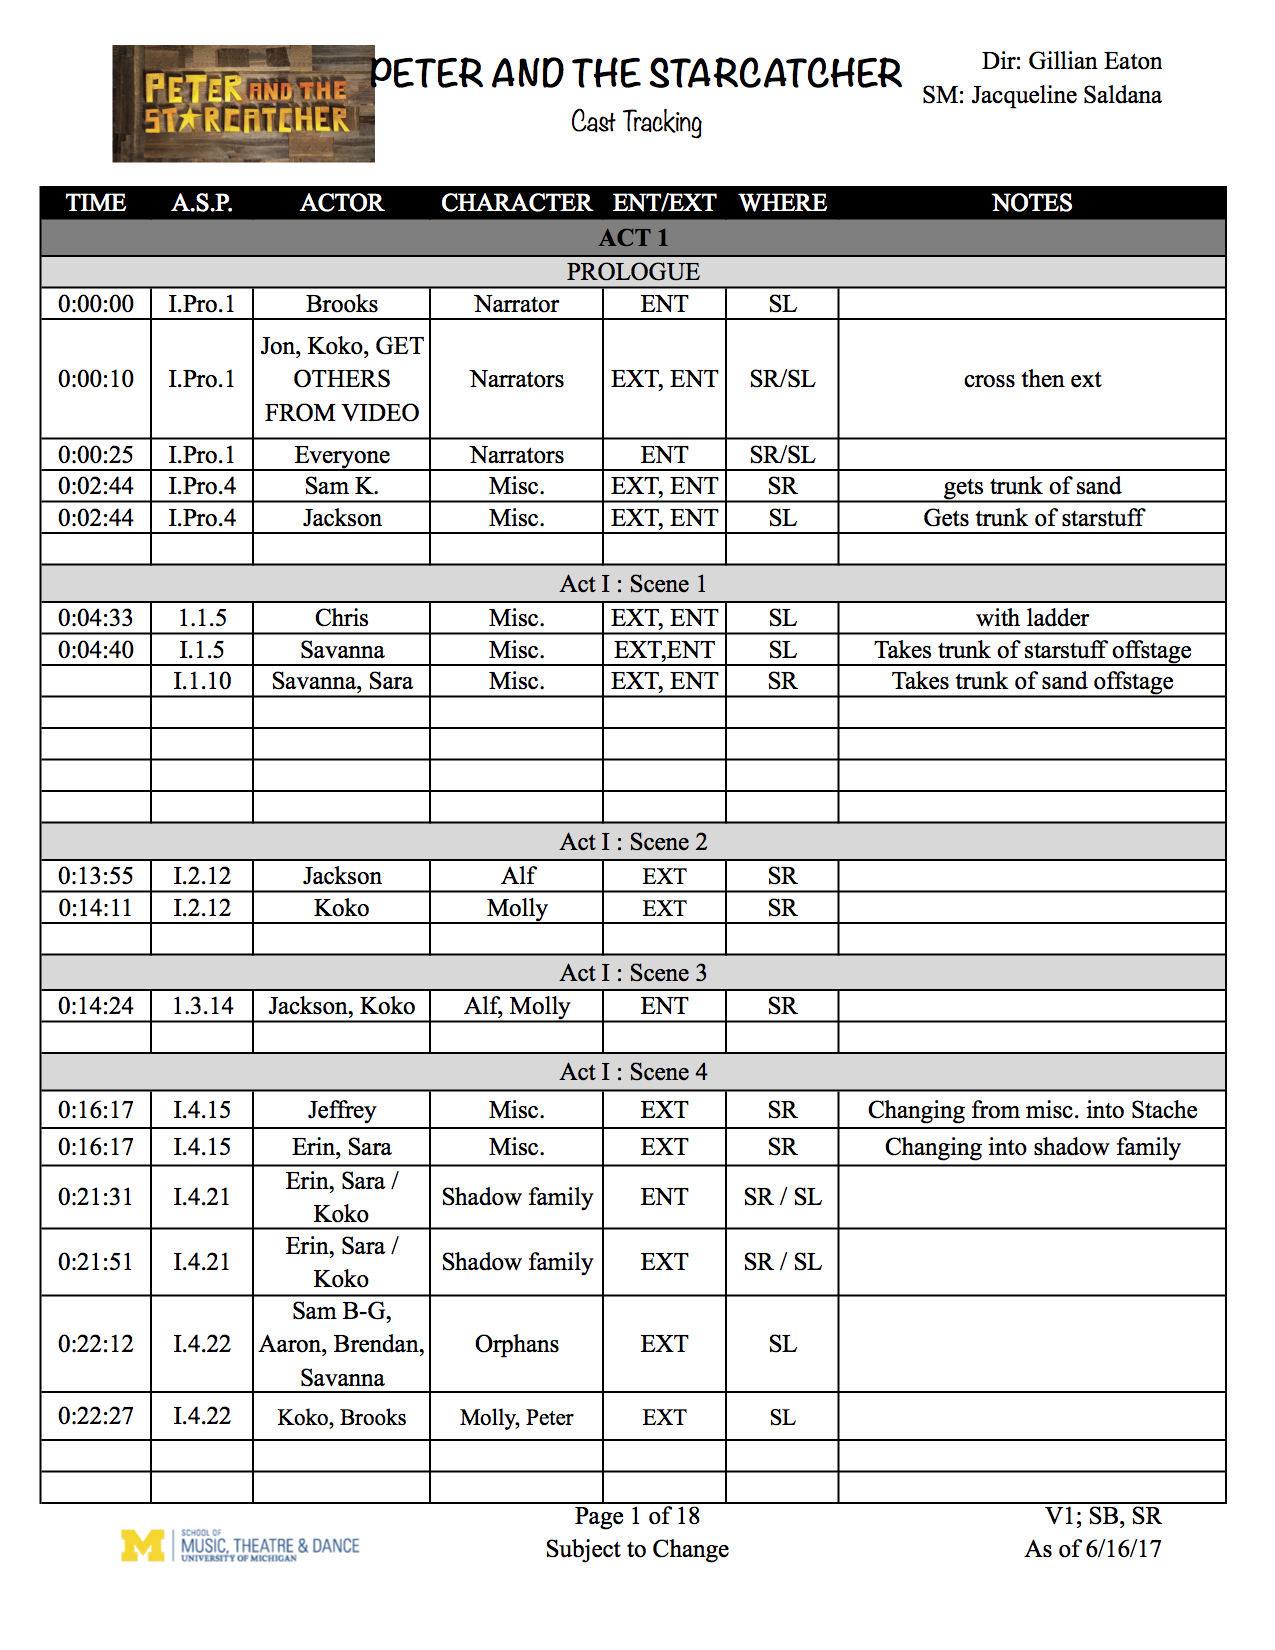 Cast Tracking (p. 1 of 9)